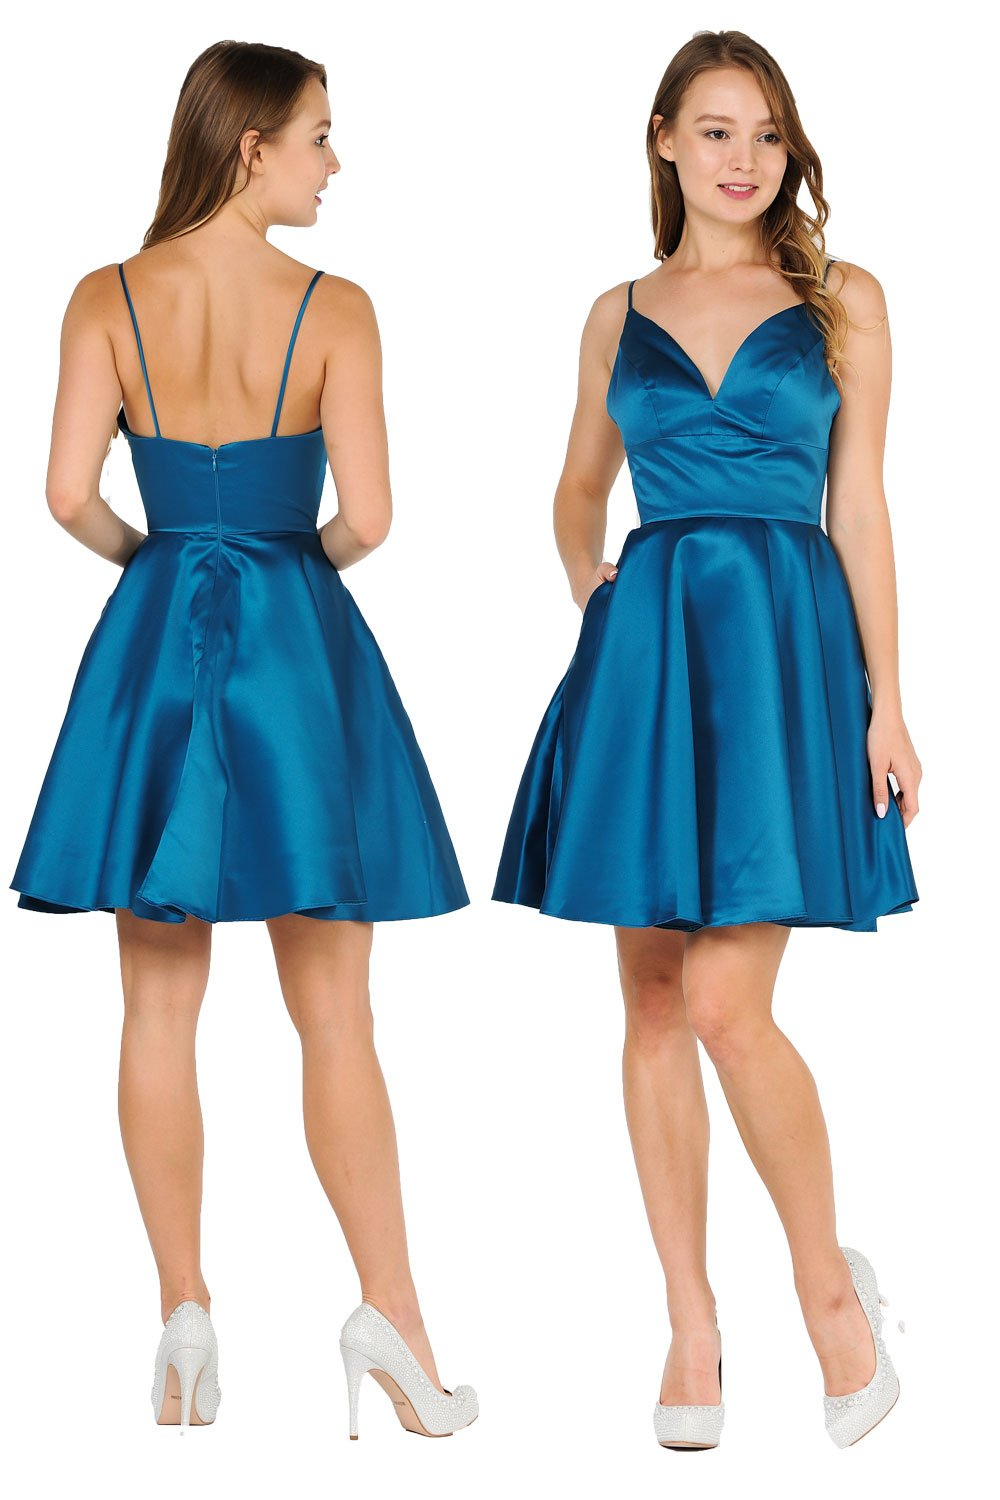 A-line Teal Satin dress with sweetheart neckline homecoming dress.